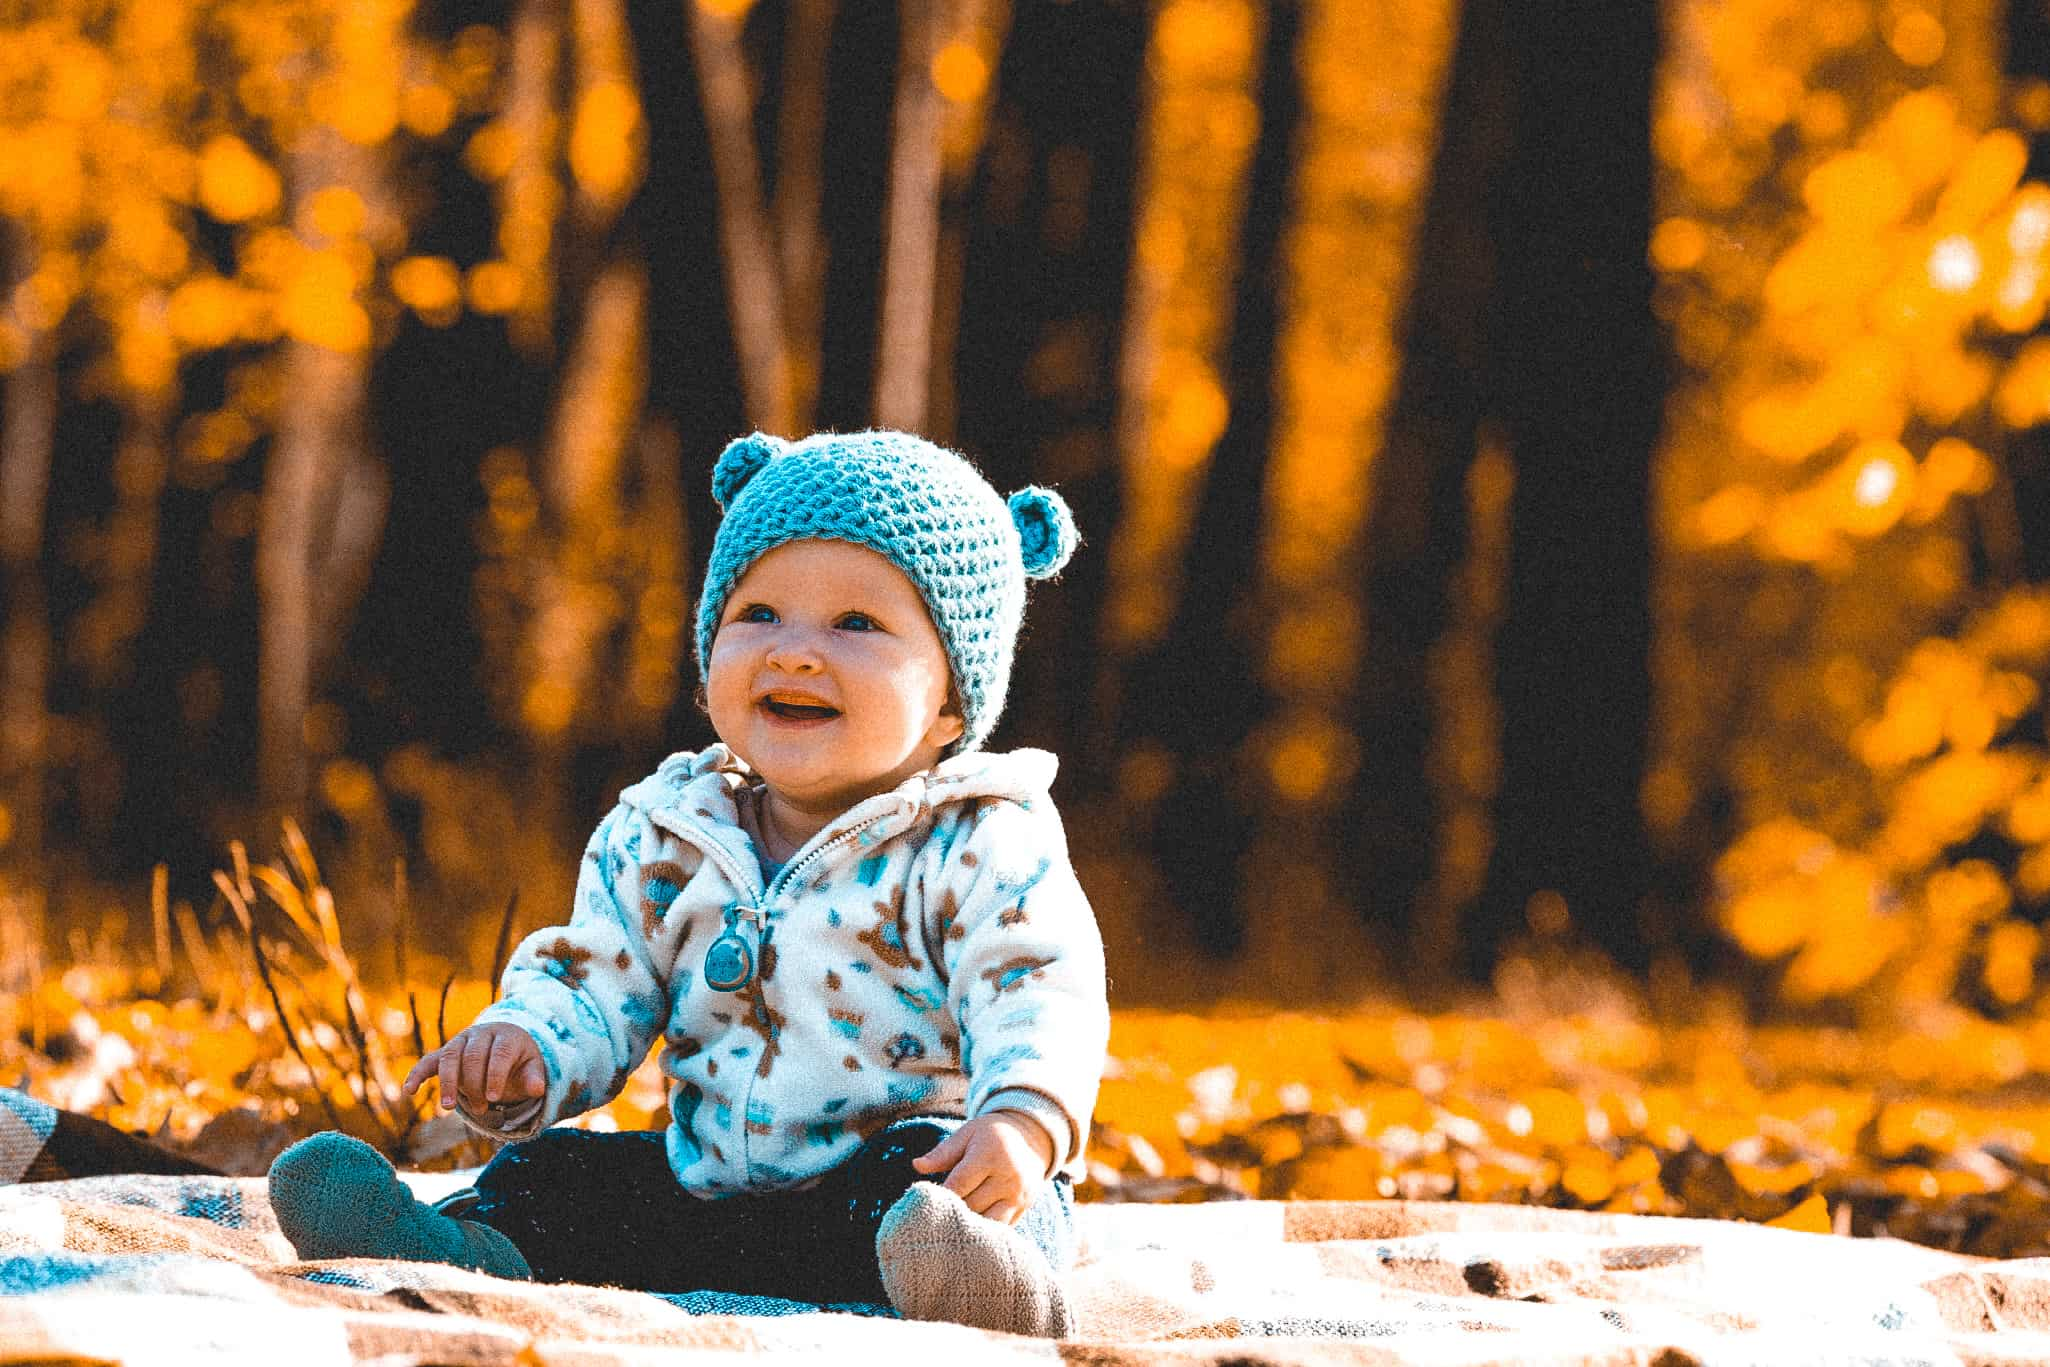 baby-is-learning-to-sit-little-girl-is-wearing-funny-hat-with-ears_t20_lxB1Gm